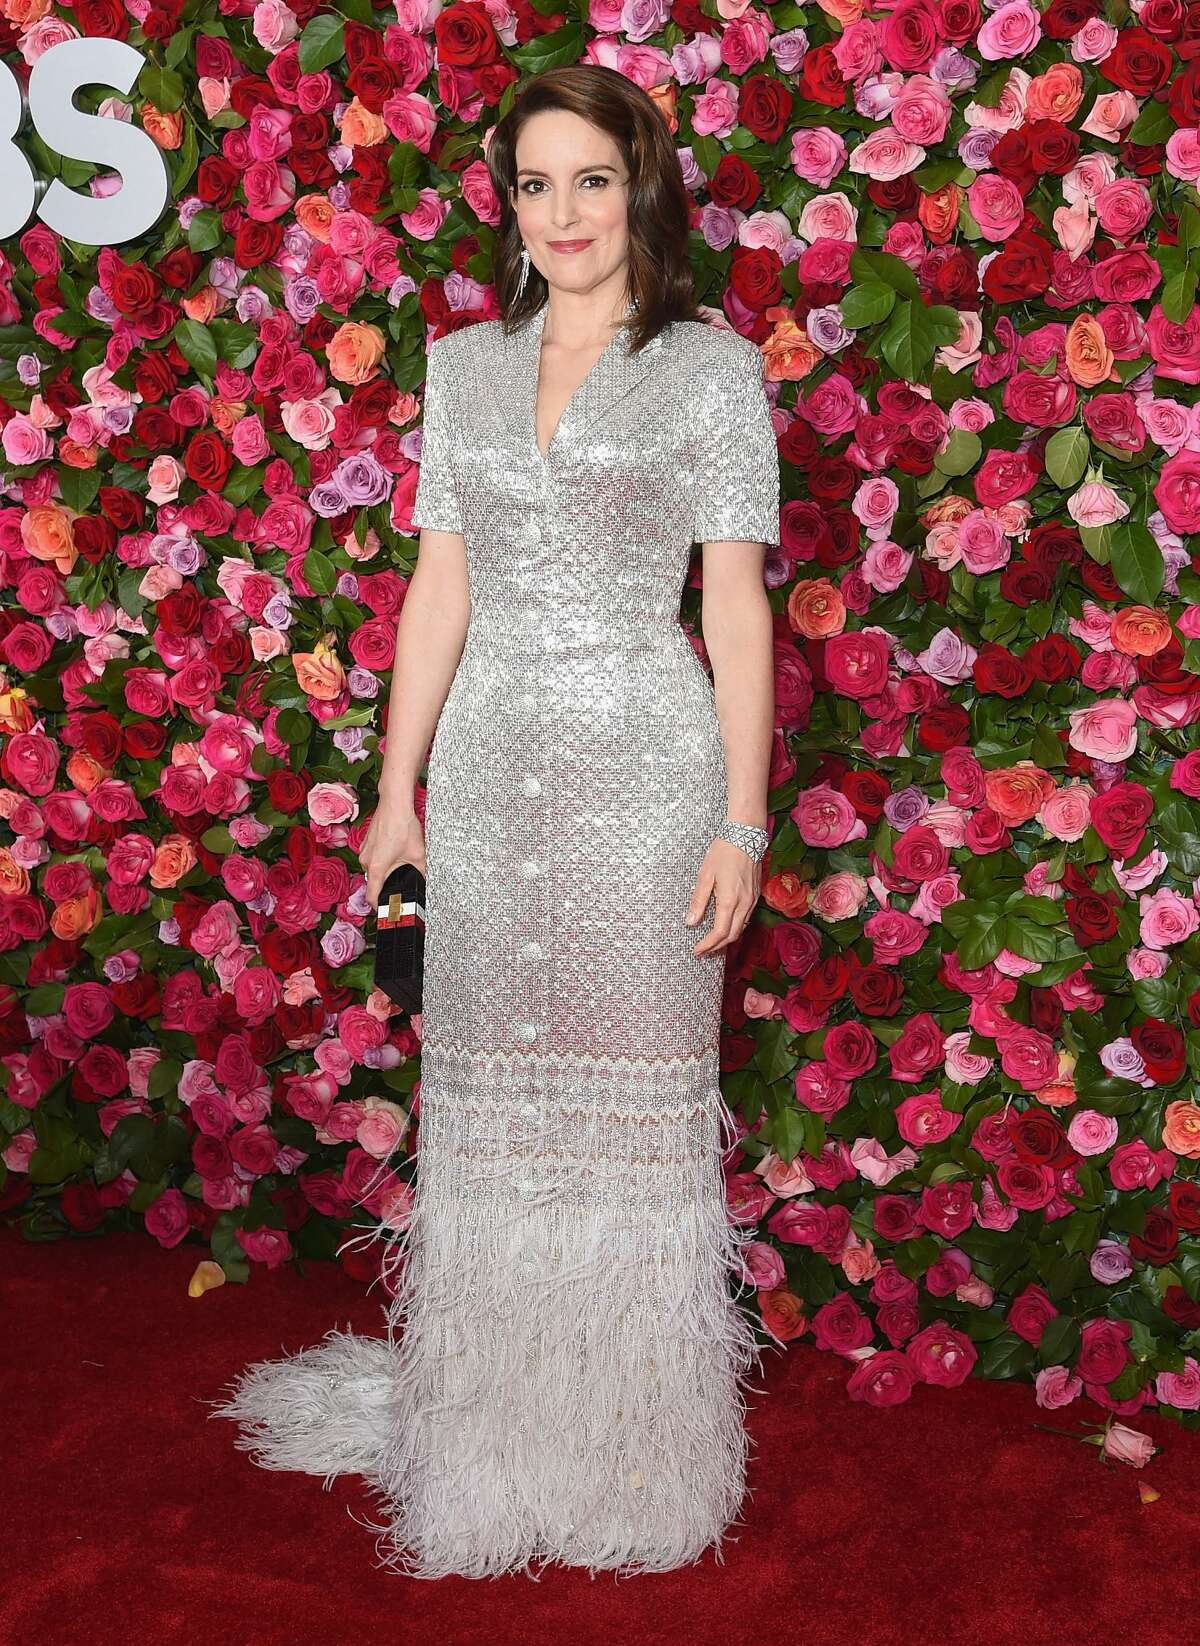 NEW YORK, NY - JUNE 10: Tina Fey attends the 72nd Annual Tony Awards at Radio City Music Hall on June 10, 2018 in New York City. (Photo by Jamie McCarthy/Getty Images)